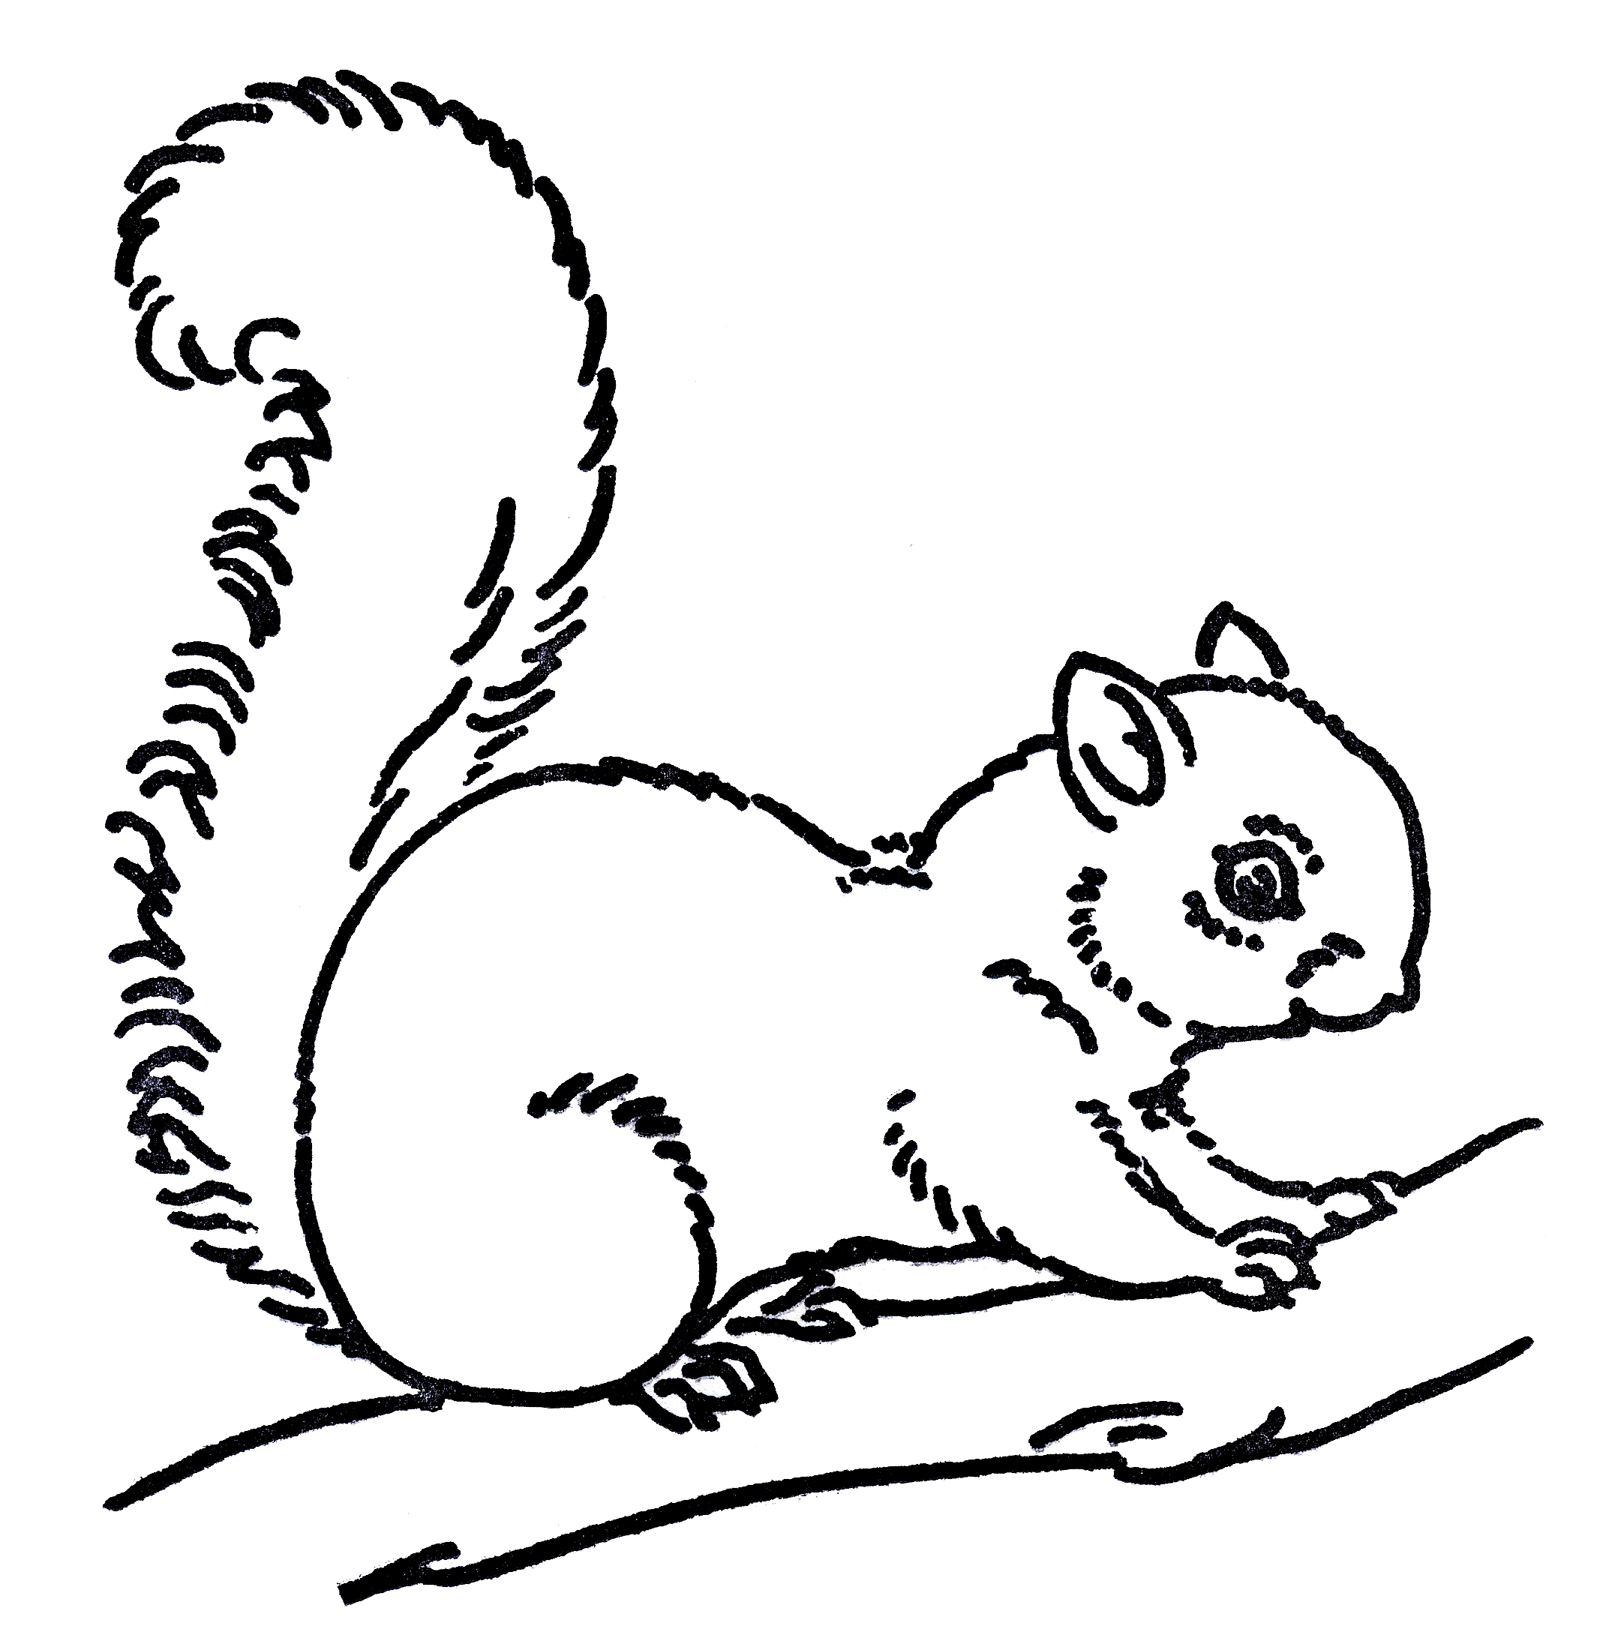 Line Art Free : Free line art images squirrel drawings the graphics fairy